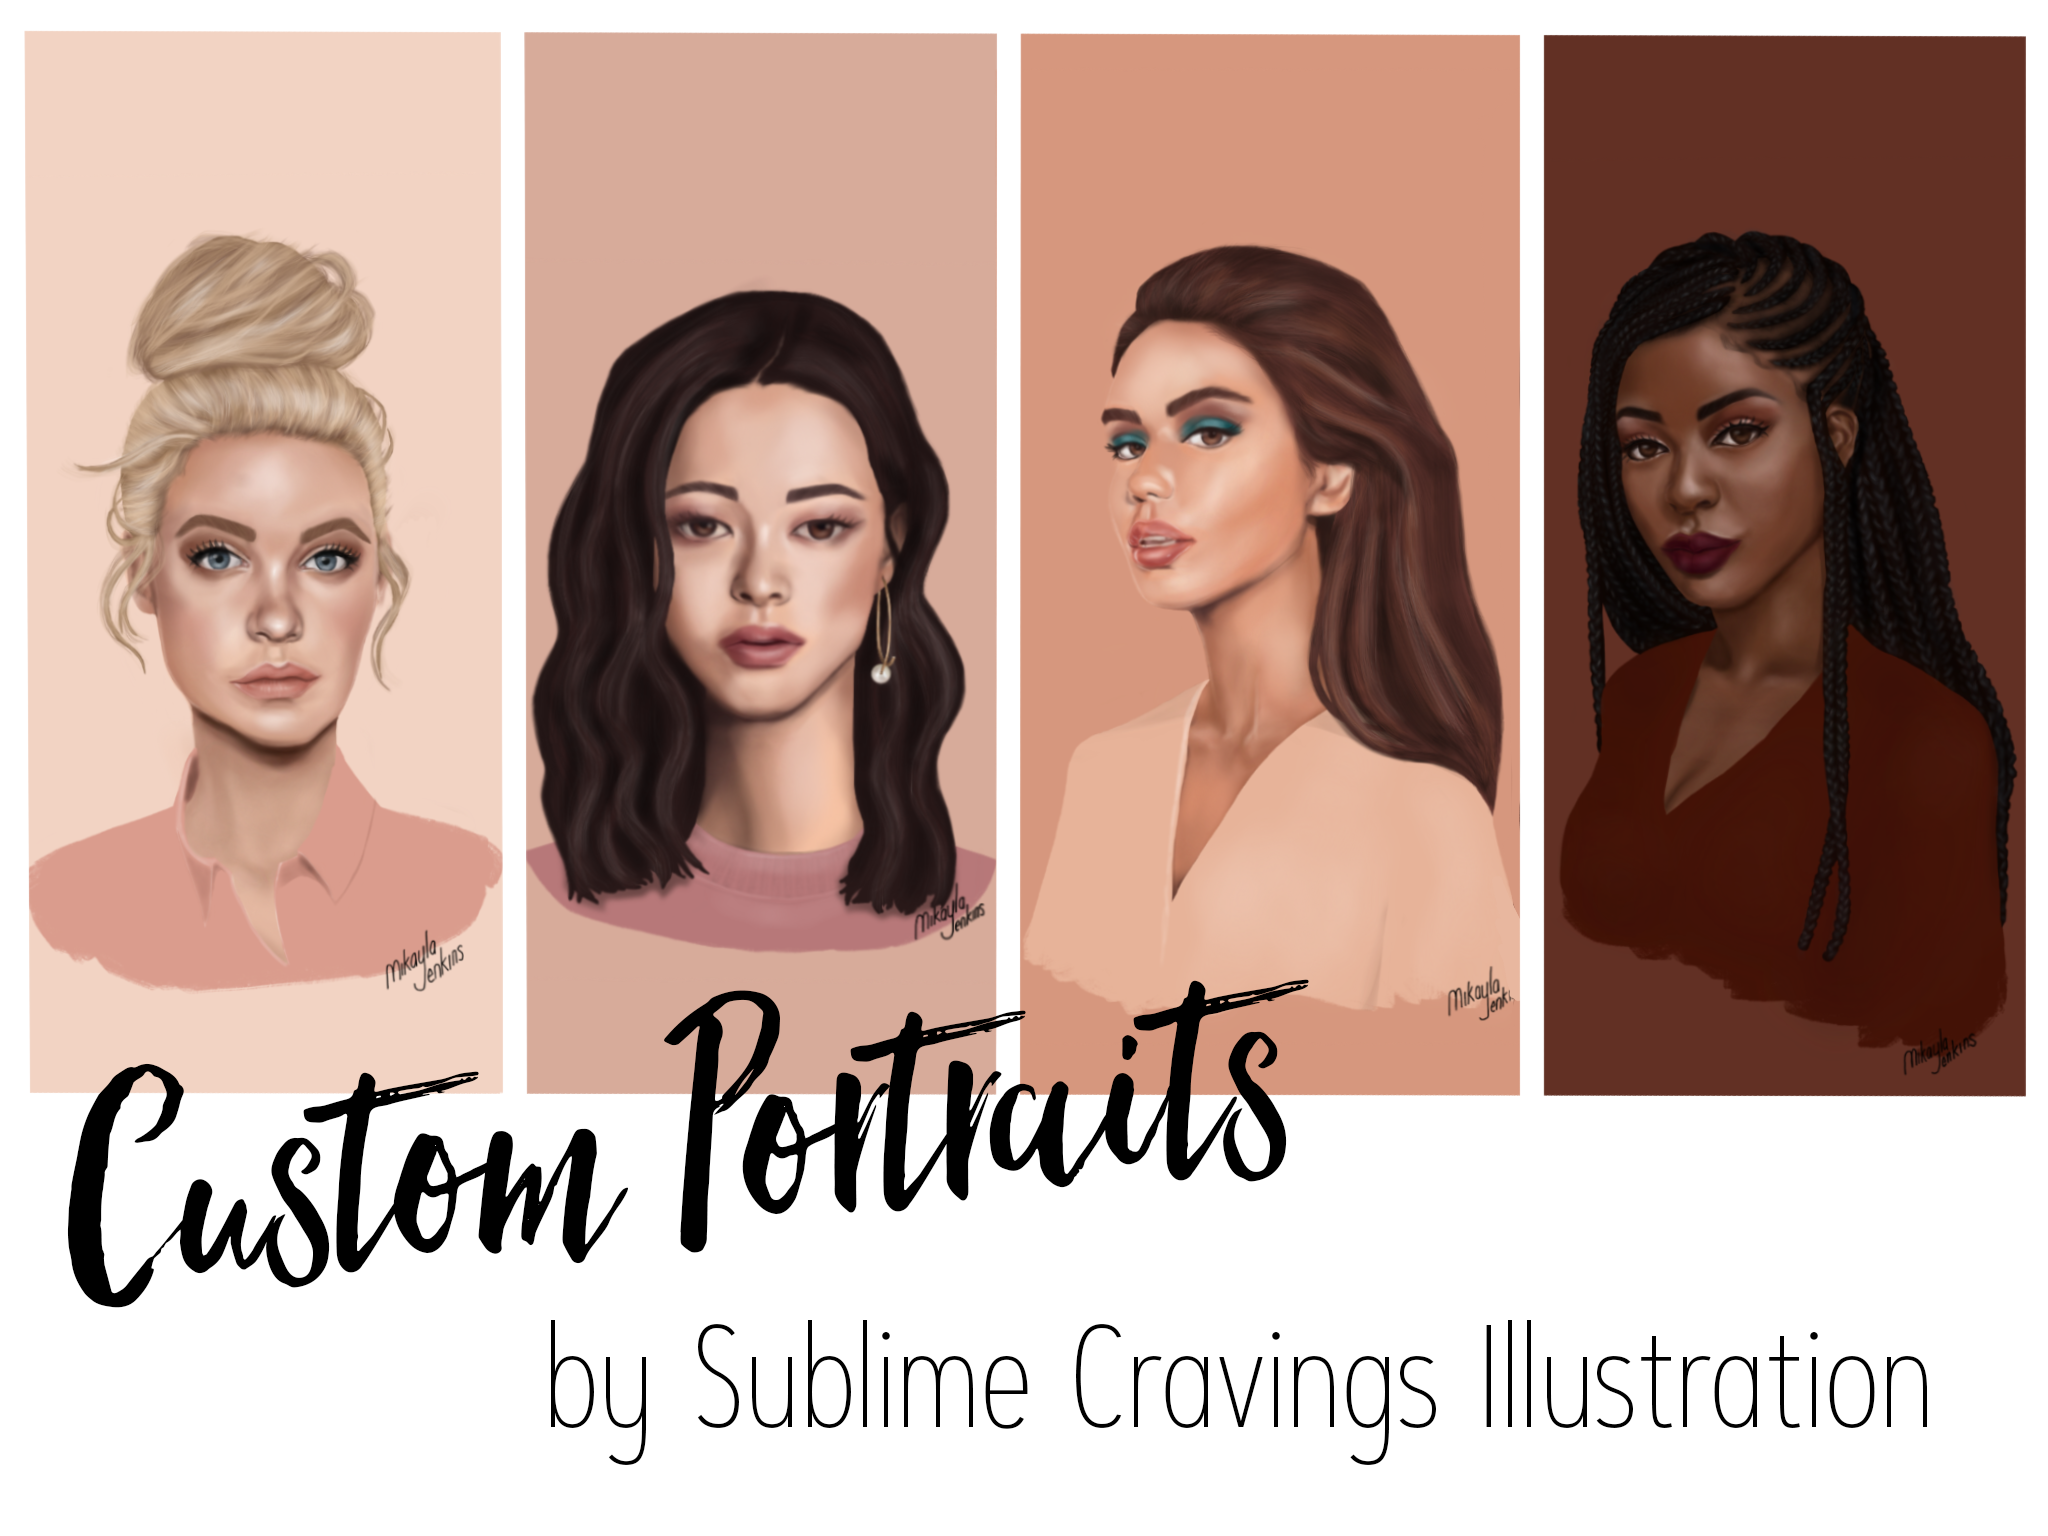 Custom portrait commission - Sublime Cravings Illustration